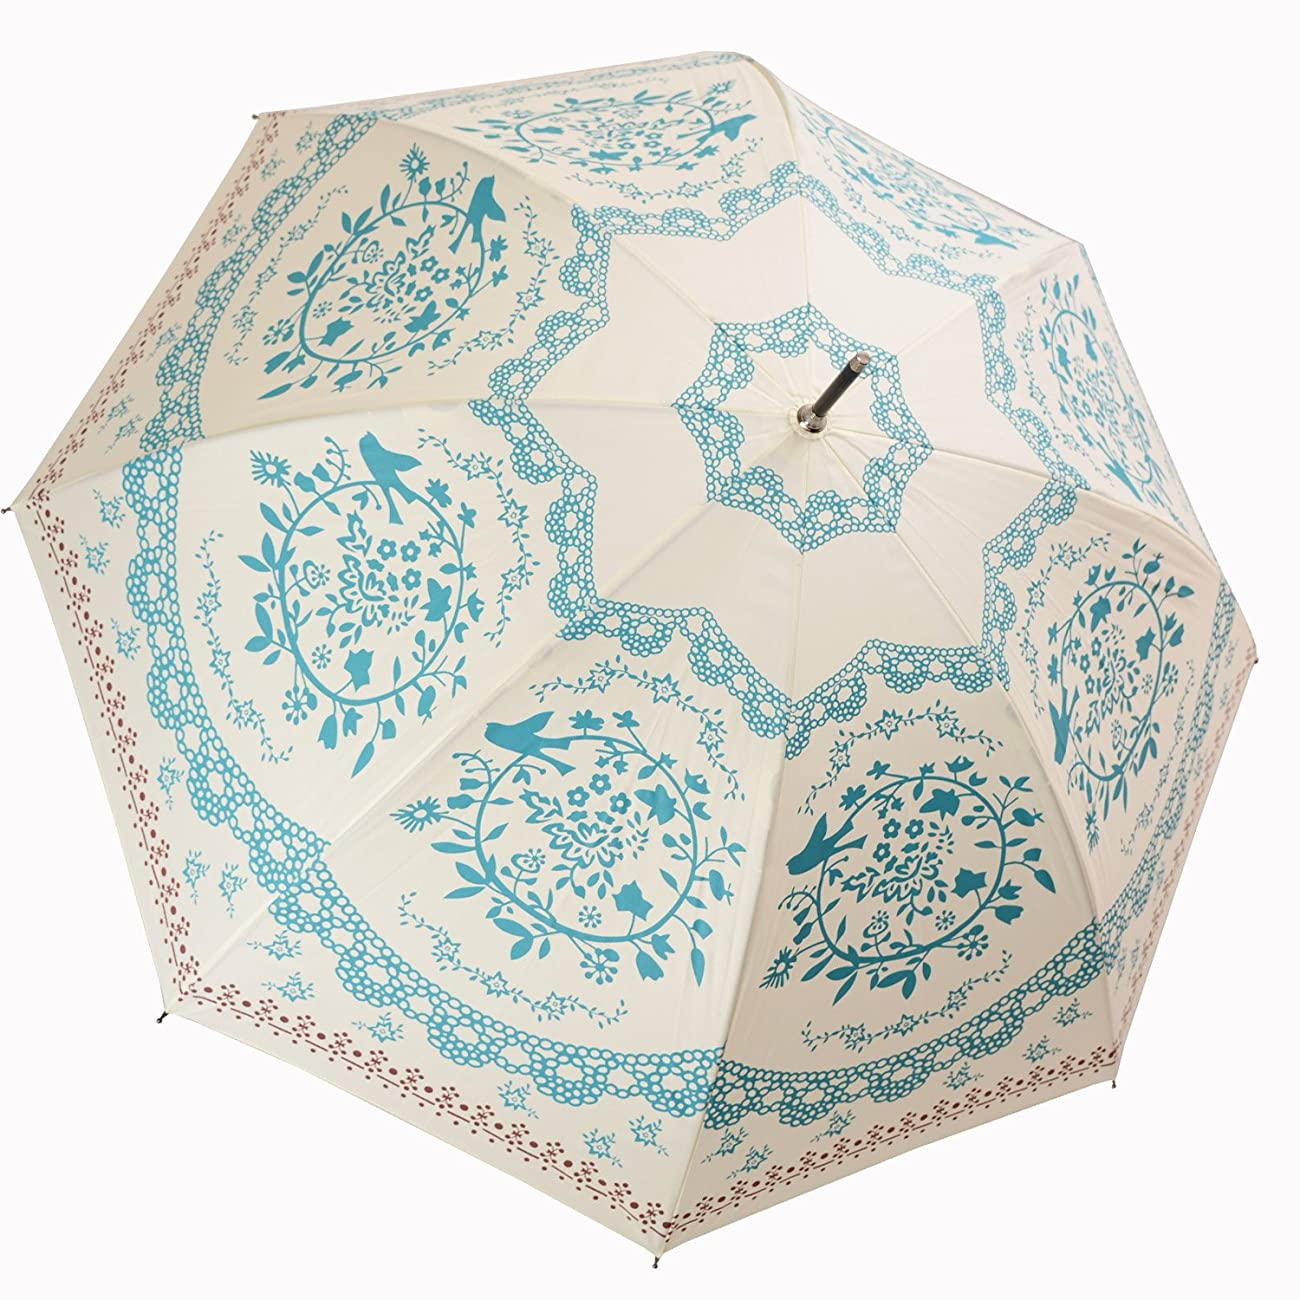 Kung Fu Smith Vintage Flower Totem Print Bubble Dome Rain Umbrella 2